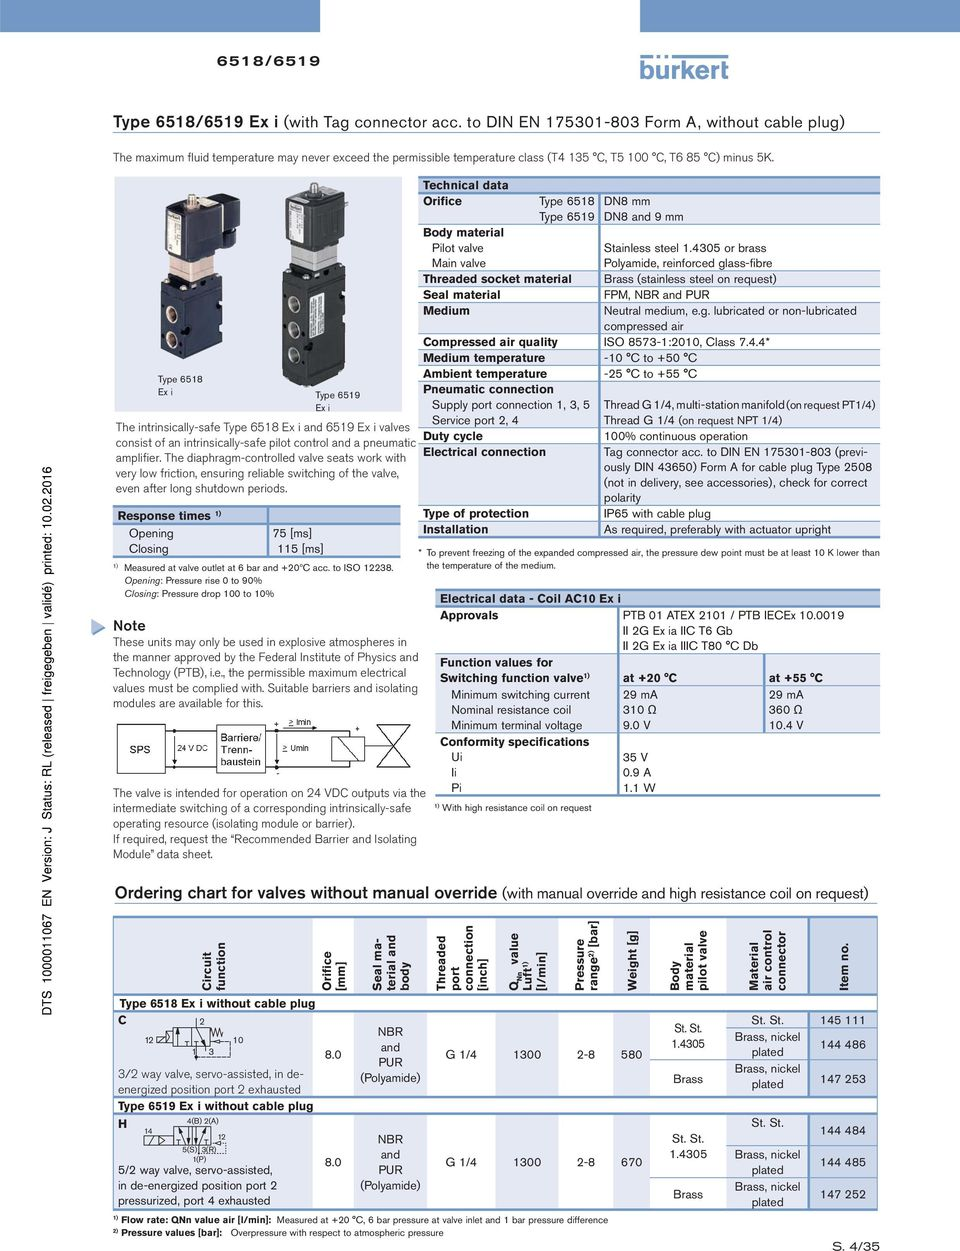 Type 6518 Ex i Type 6519 Ex i The intrinsically-safe Type 6518 Ex i and 6519 Ex i valves consist of an intrinsically-safe pilot control and a pneumatic amplifier.